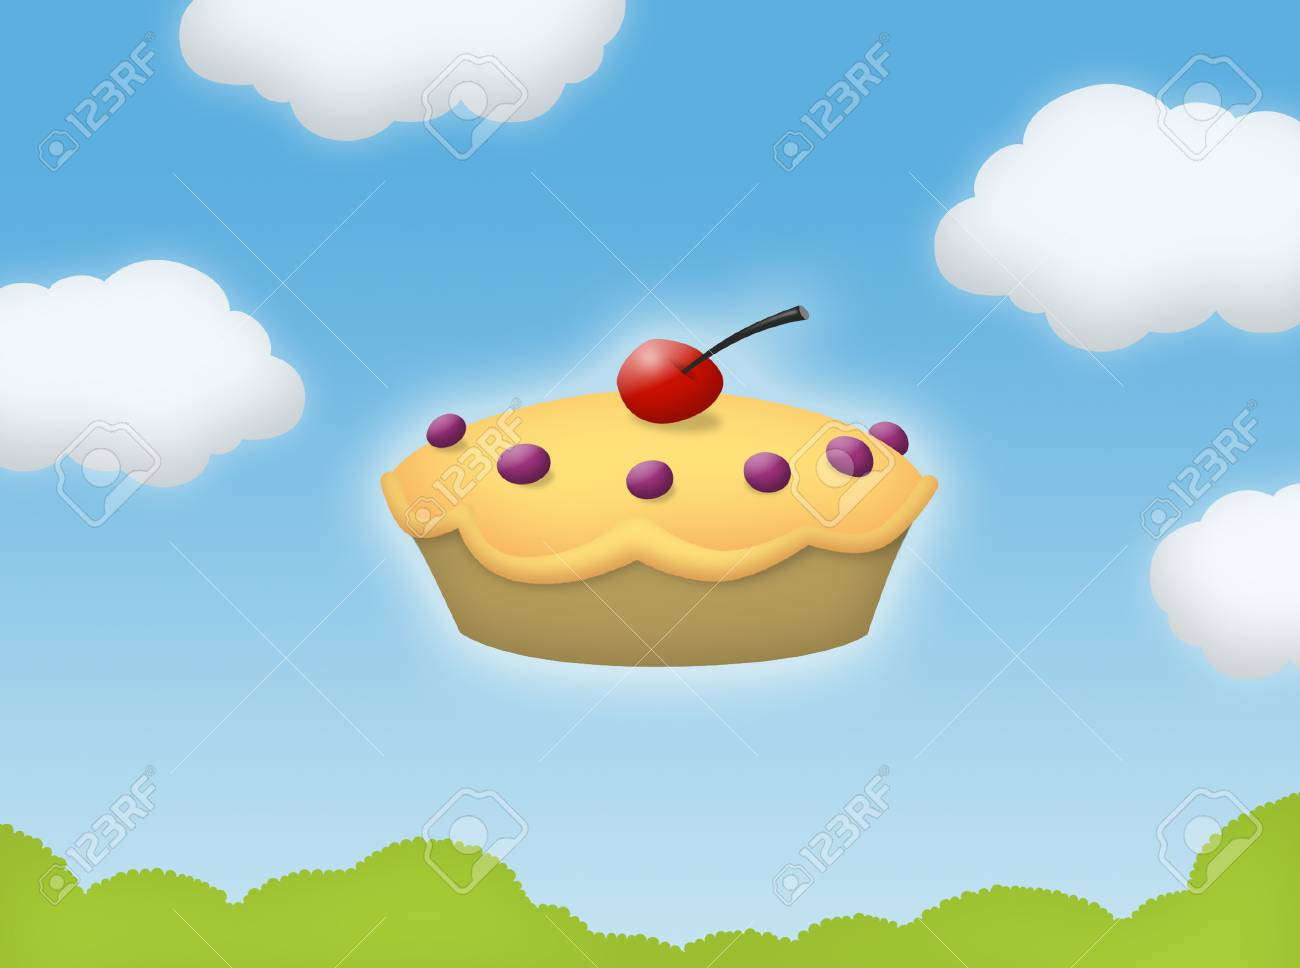 Pie floating in the sky with clouds. - 44494485